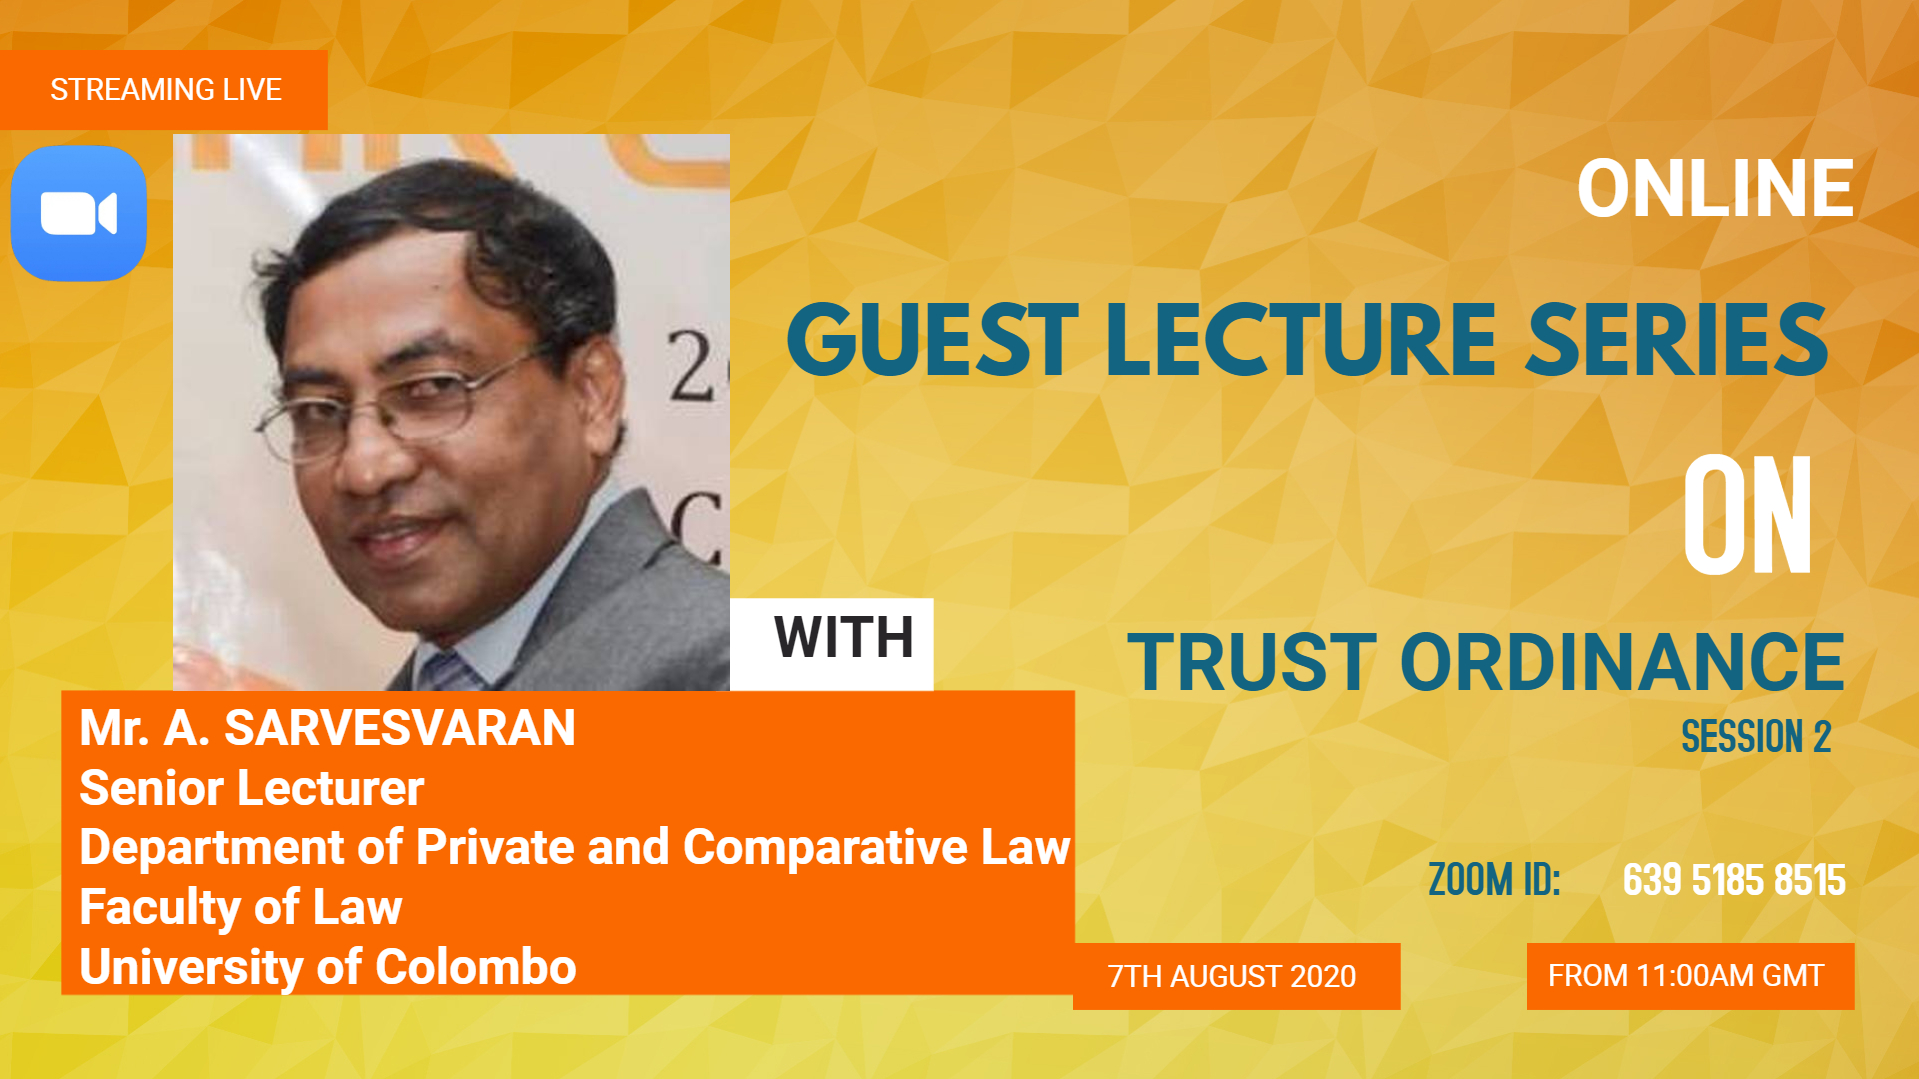 GUEST LECTURE SERIES ON TRUST ORDINANCE – SESSION II